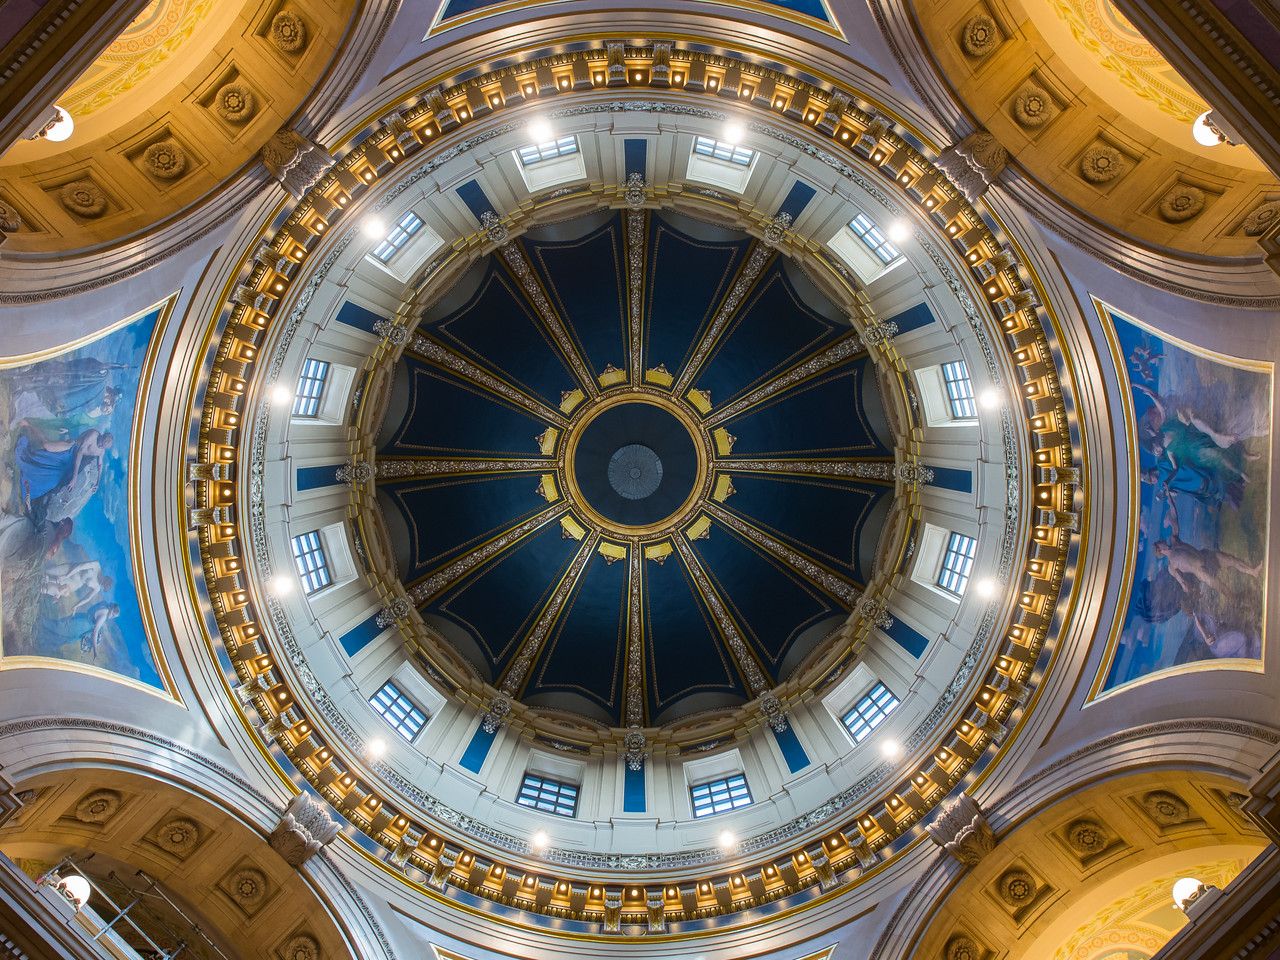 Looking up at the dome interior, MN State Captiol